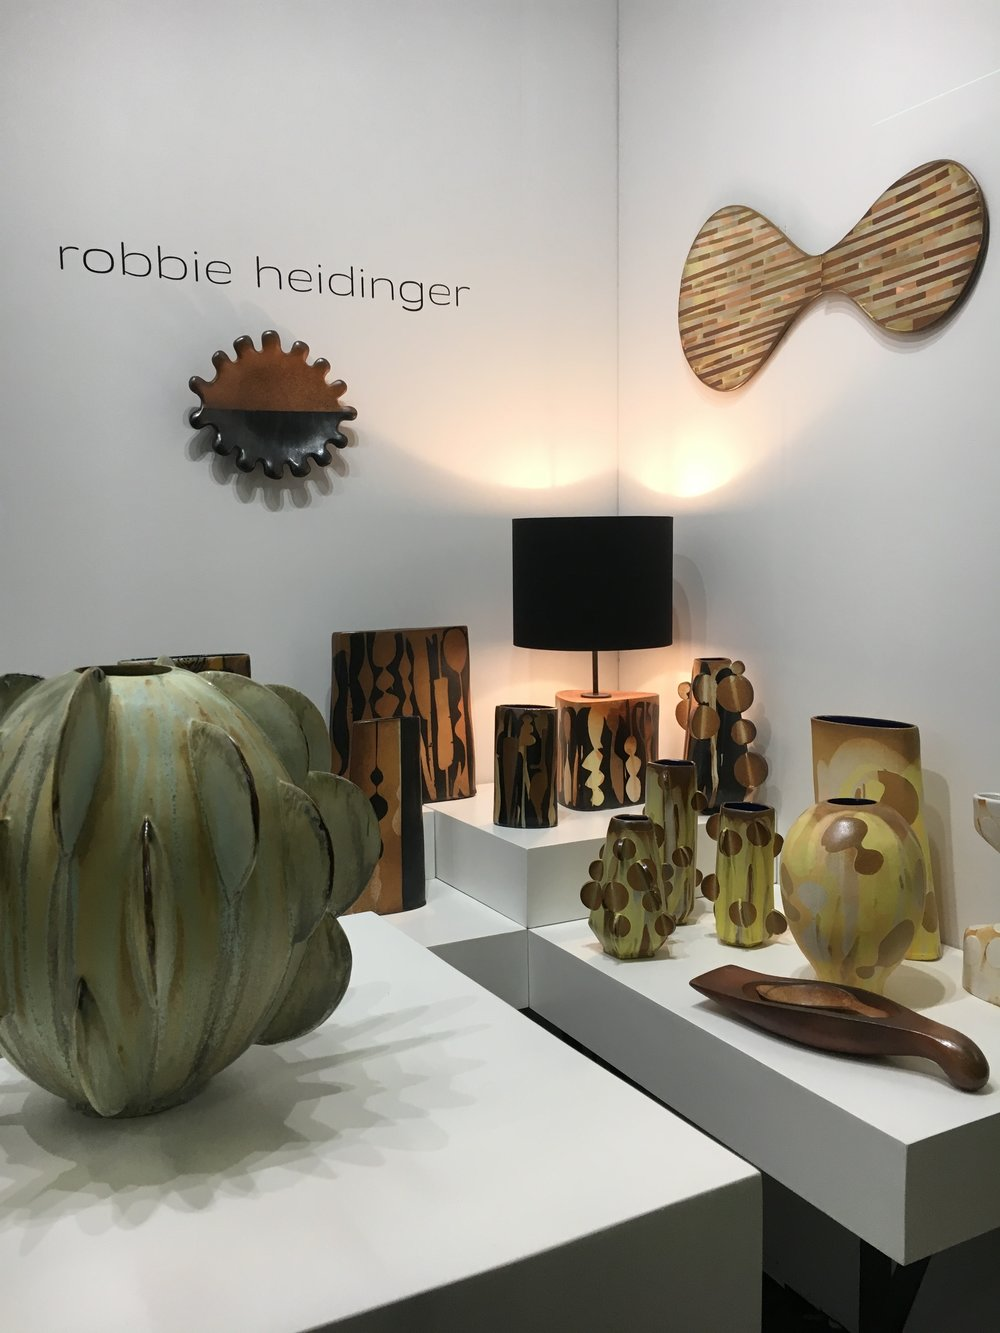 - Architectural Digest Design Show 2019MADE section booth 905Pier 94NYC, New York